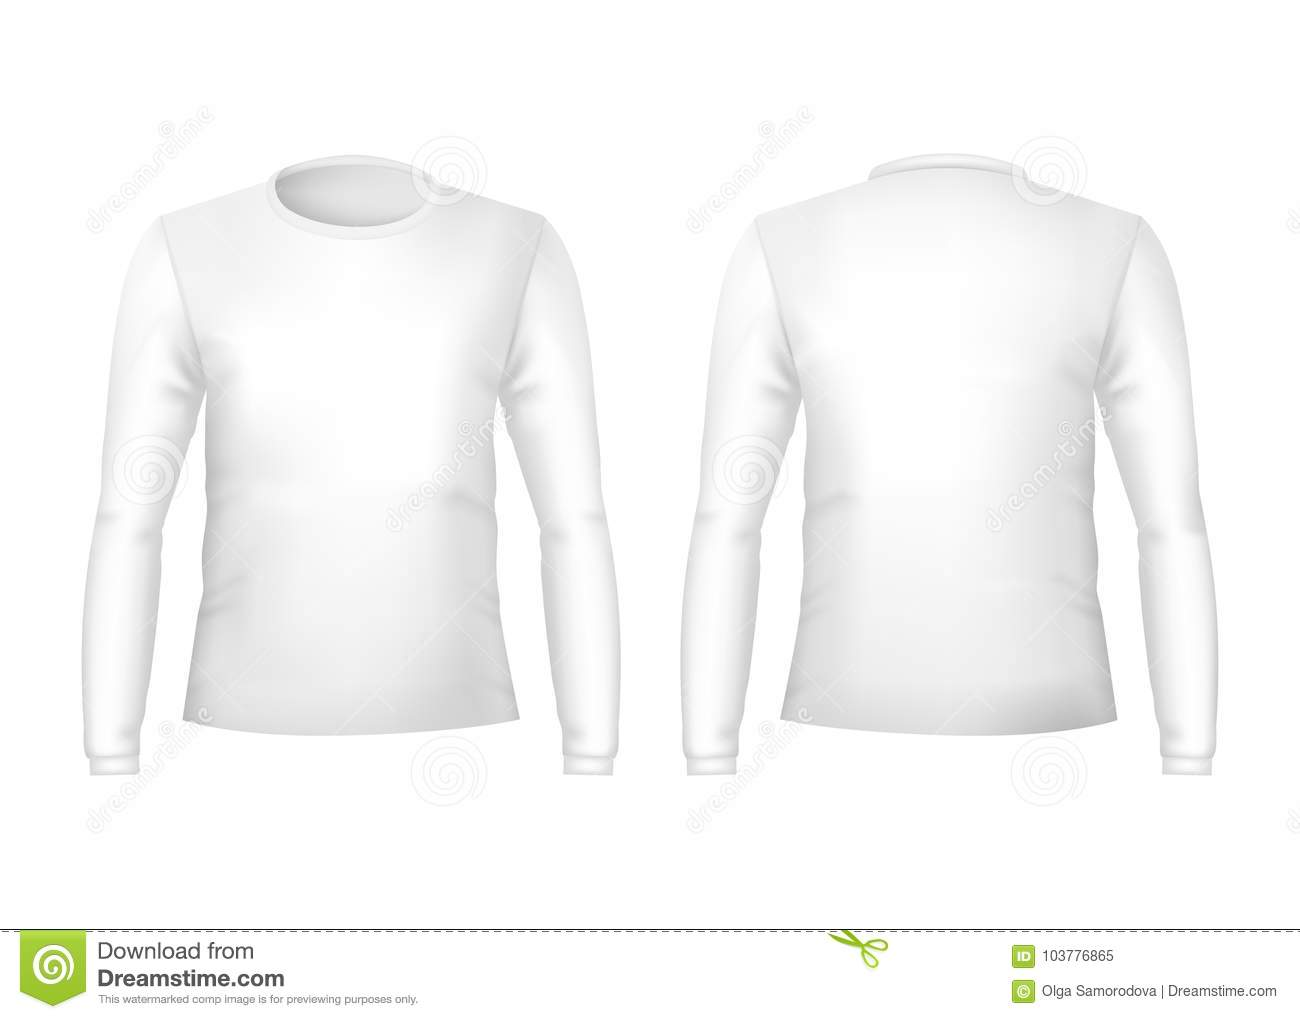 Realistic Detailed 3d Template Blank White T Shirts Front And Back